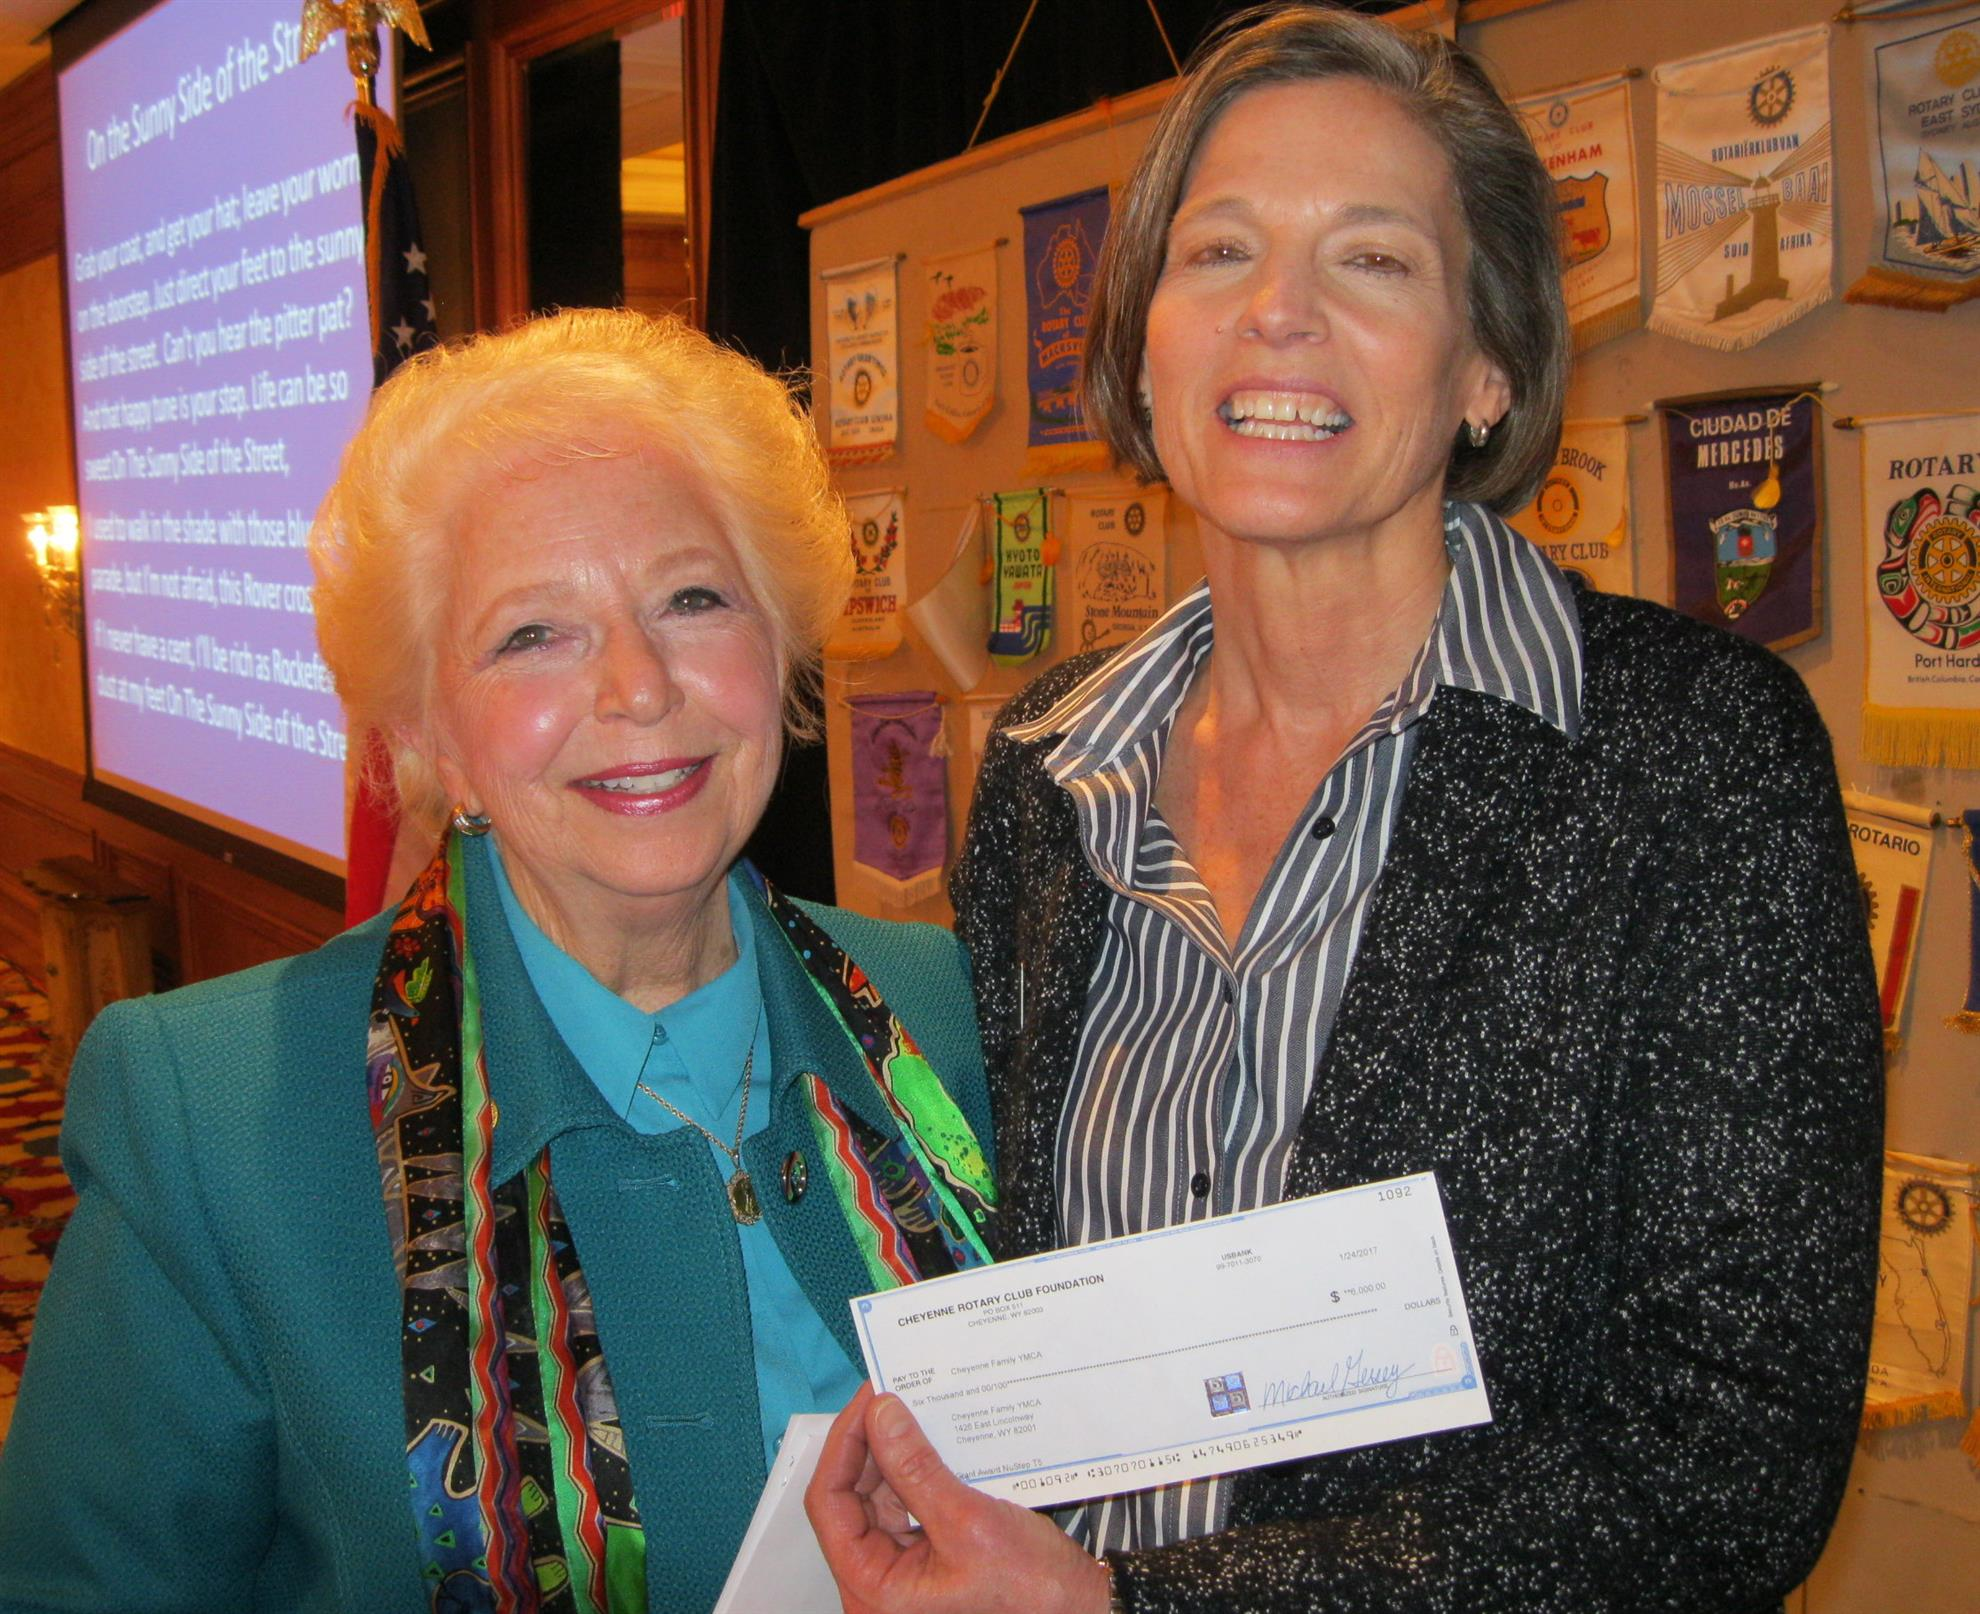 Endowment Chair, Roz Baker, Presents $6000 Grant To Ymca Director, Patty  Walters, How To Eat Fried Worms